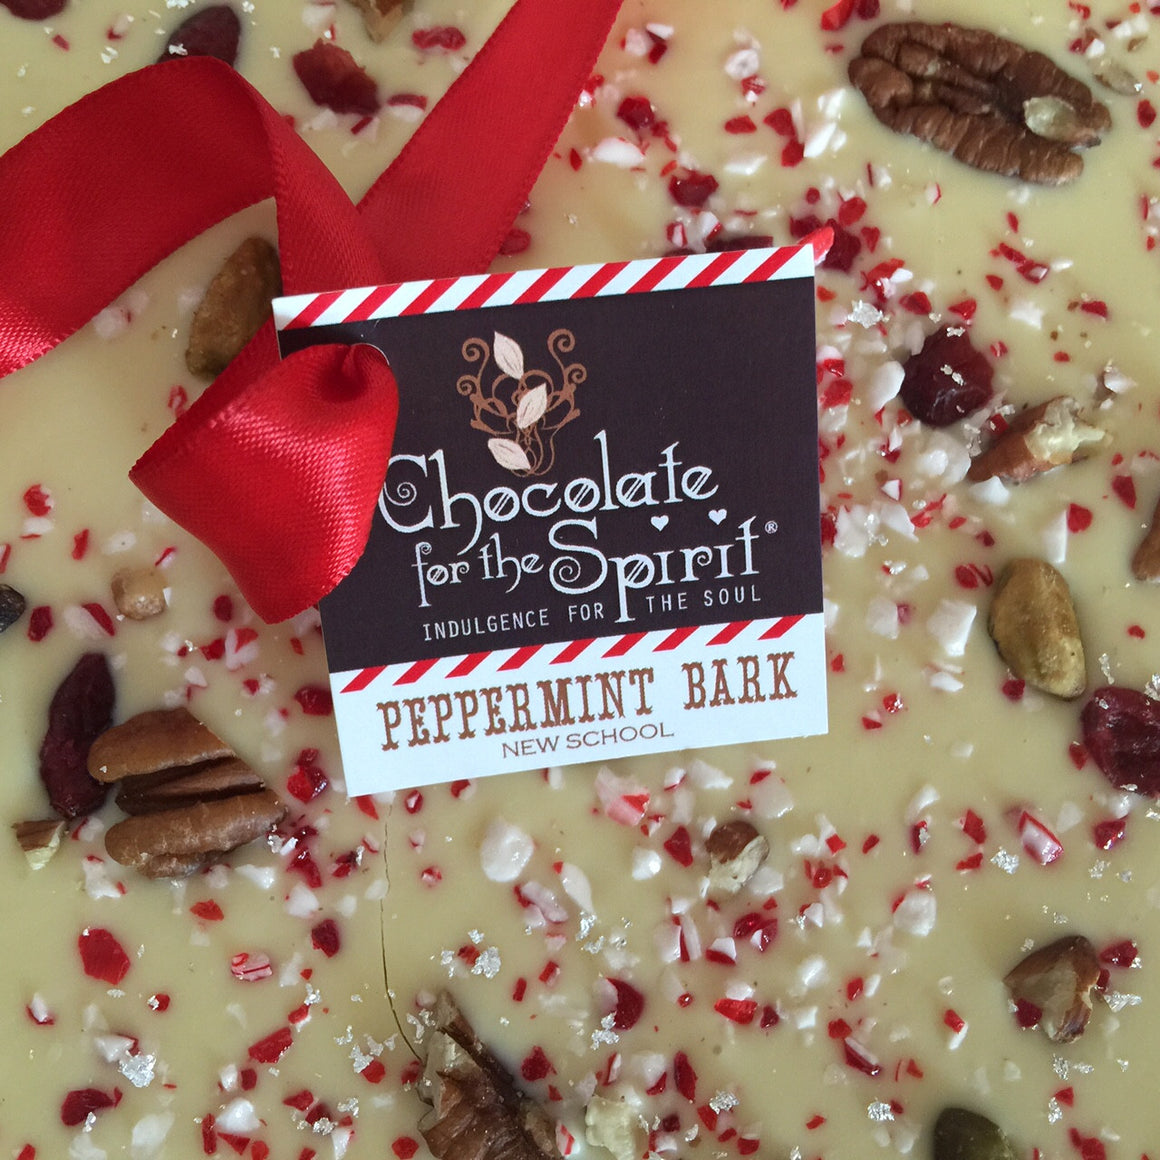 Peppermint Bark - Award-Winner